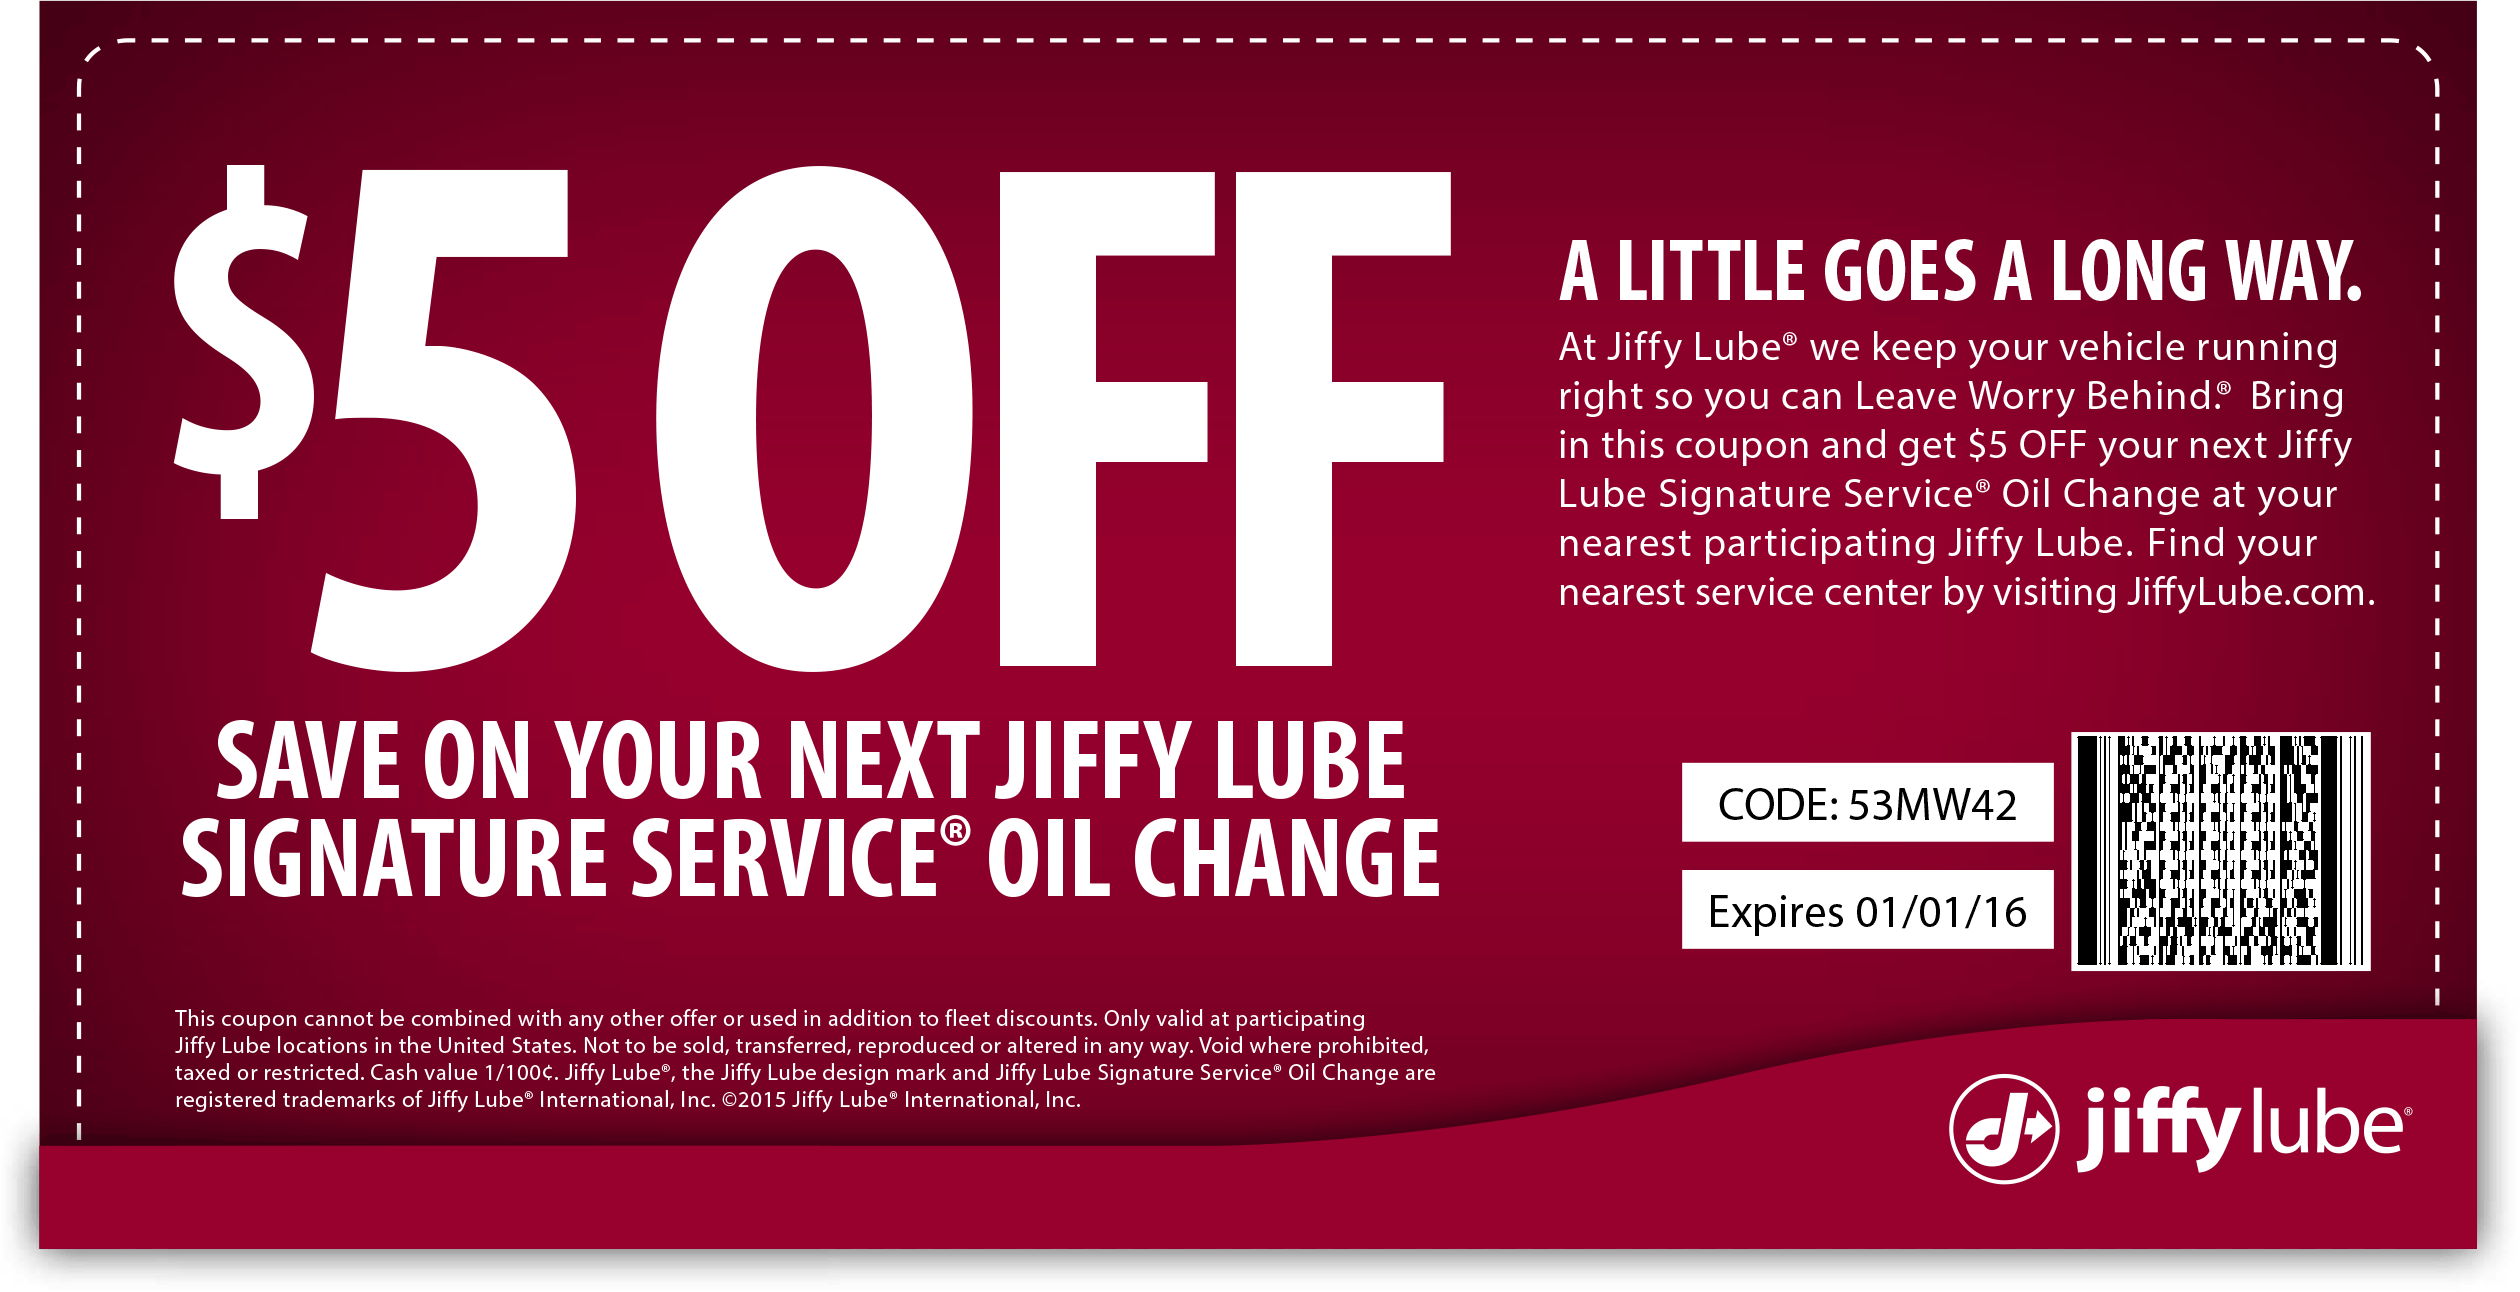 Jiffy Lube Coupon March 2017 $5 off an oil change at Jiffy Lube